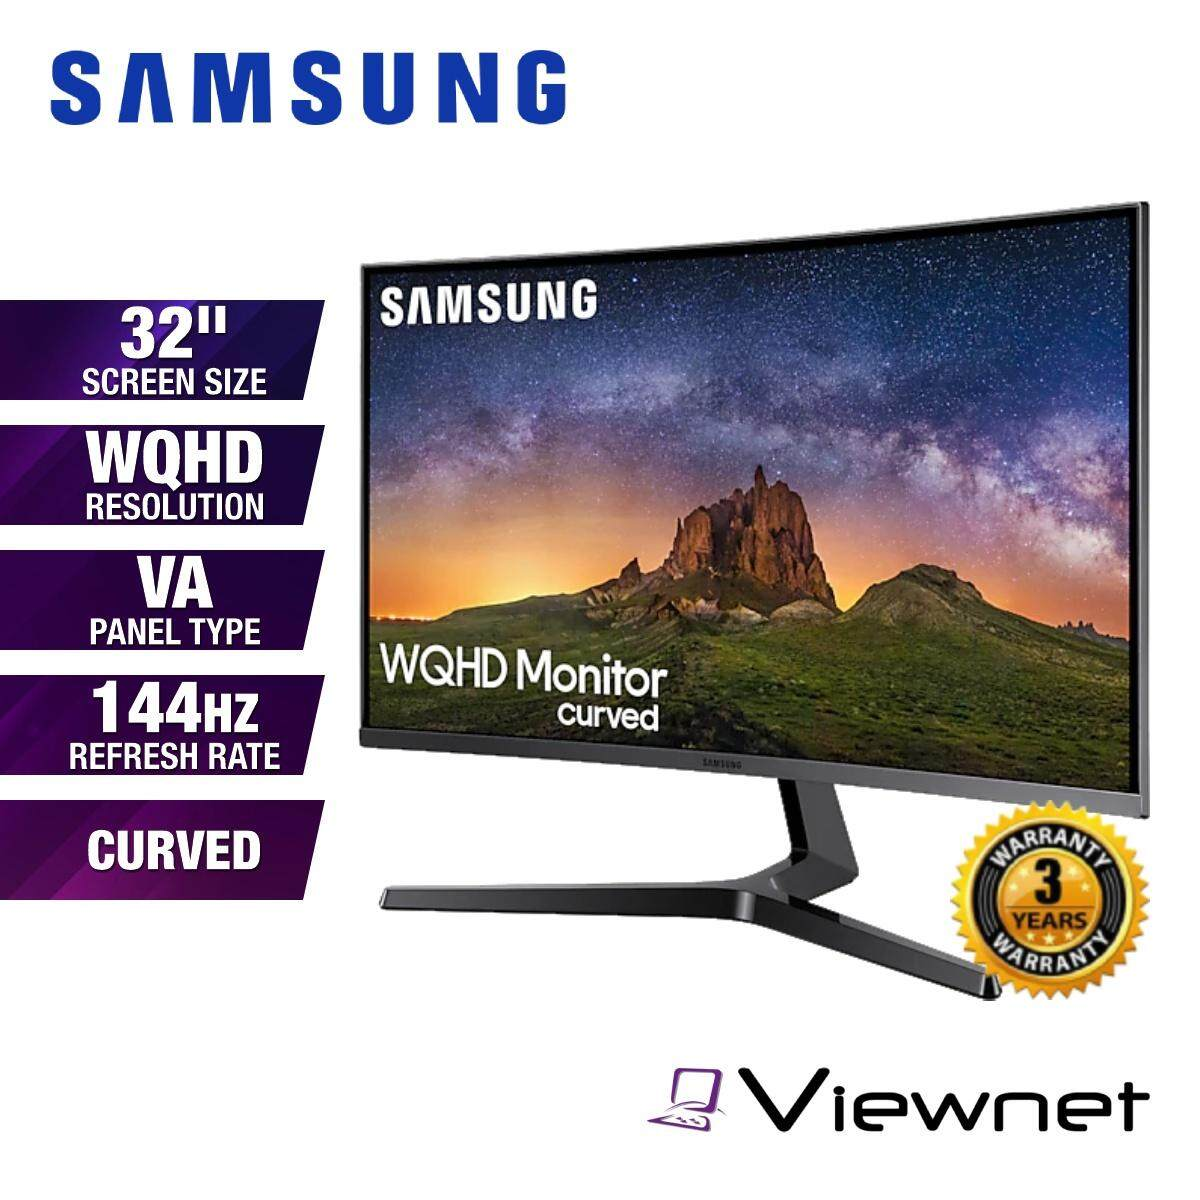 Samsung C32JG50QQE 32 WQHD VA 144Hz 4ms Curved LED Gaming Monitor CJG50 (LC32JG50QQEXXM) HDMI 1.4, HDMI 2.0, DisplayPort 1.2, Headphone Jack, VESA Compatible, Tilt, Eye Saver Mode, Flicker Free, Game Color Mode, Black Equalizer, Low Input Lag Mode Malaysia